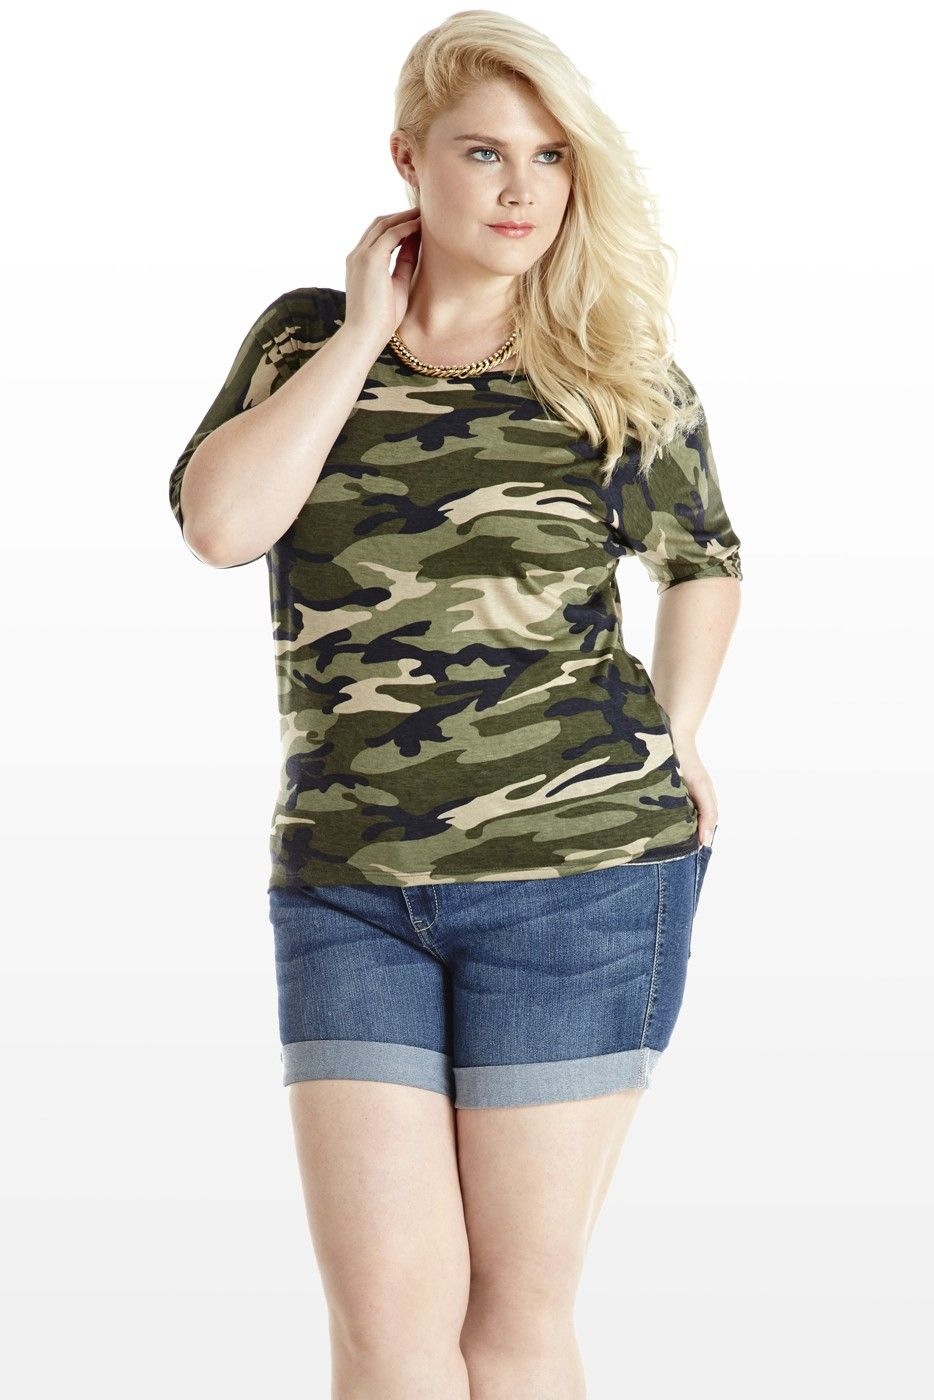 Rockabilly wedding dress plus size  Camo and Went Jersey Top  Plus Size  Pinterest  Camo Catalog and